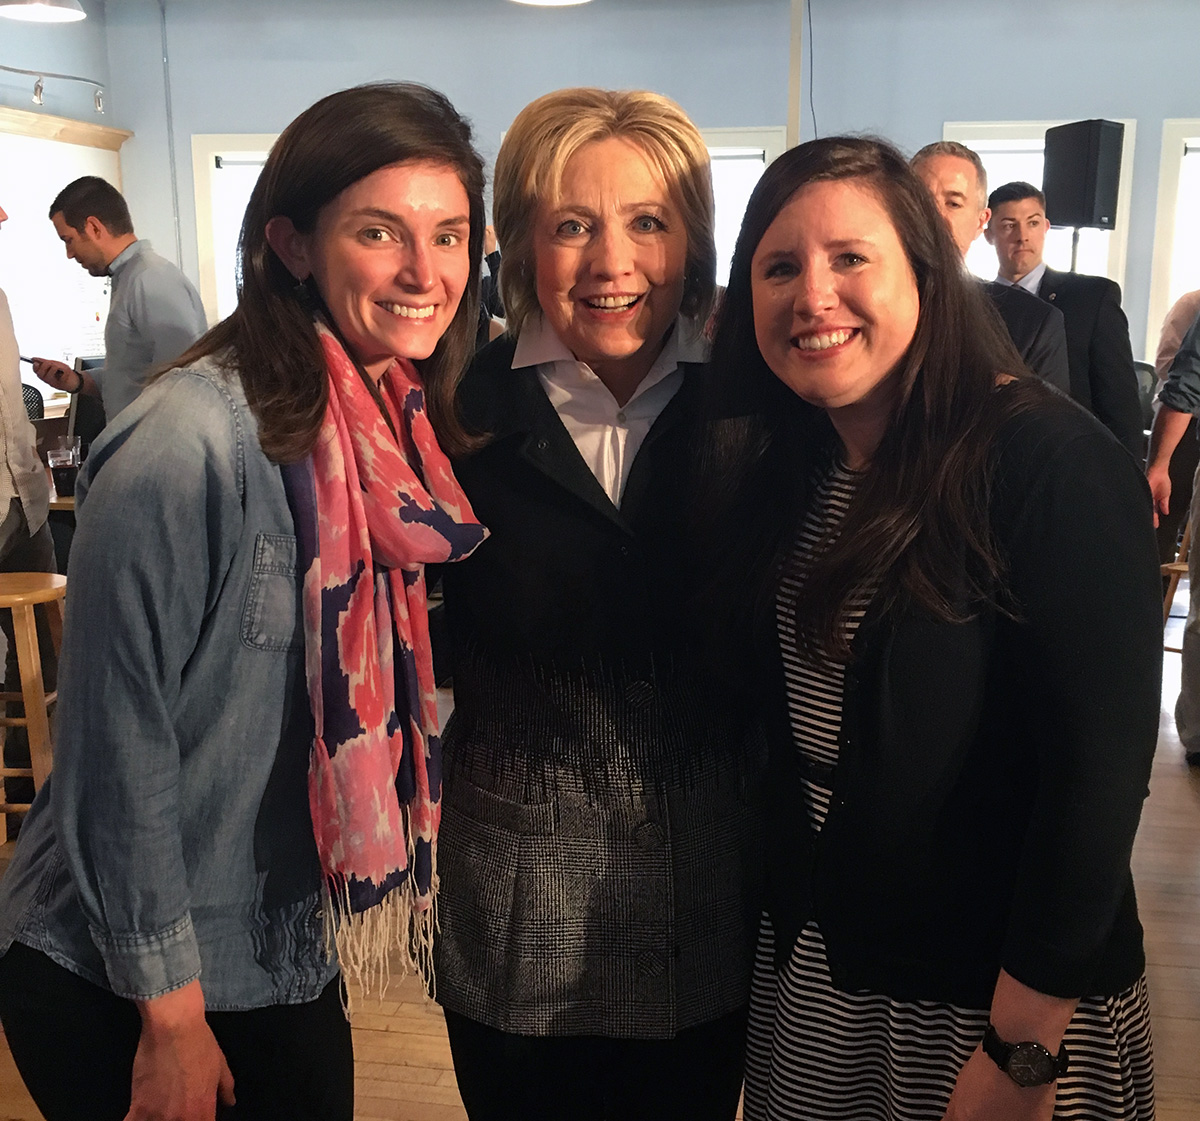 Atoms Julia Jamieson and Kimberly Wolting with Secretary Clinton.